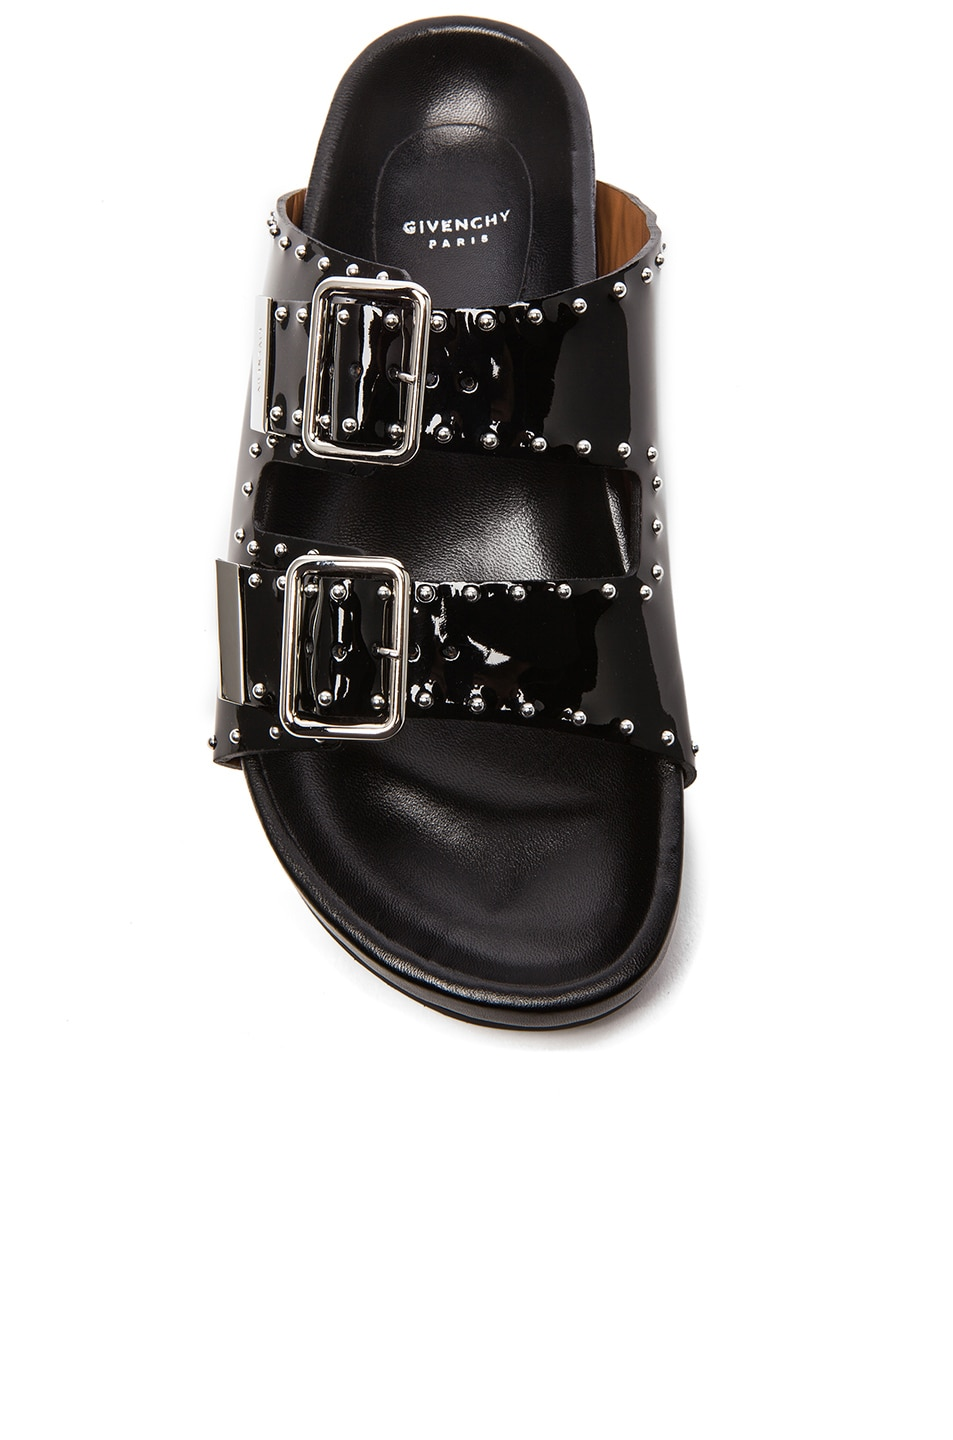 a69ffad6d074 Image 4 of Givenchy Swiss Studs Patent Leather Sandals in Black